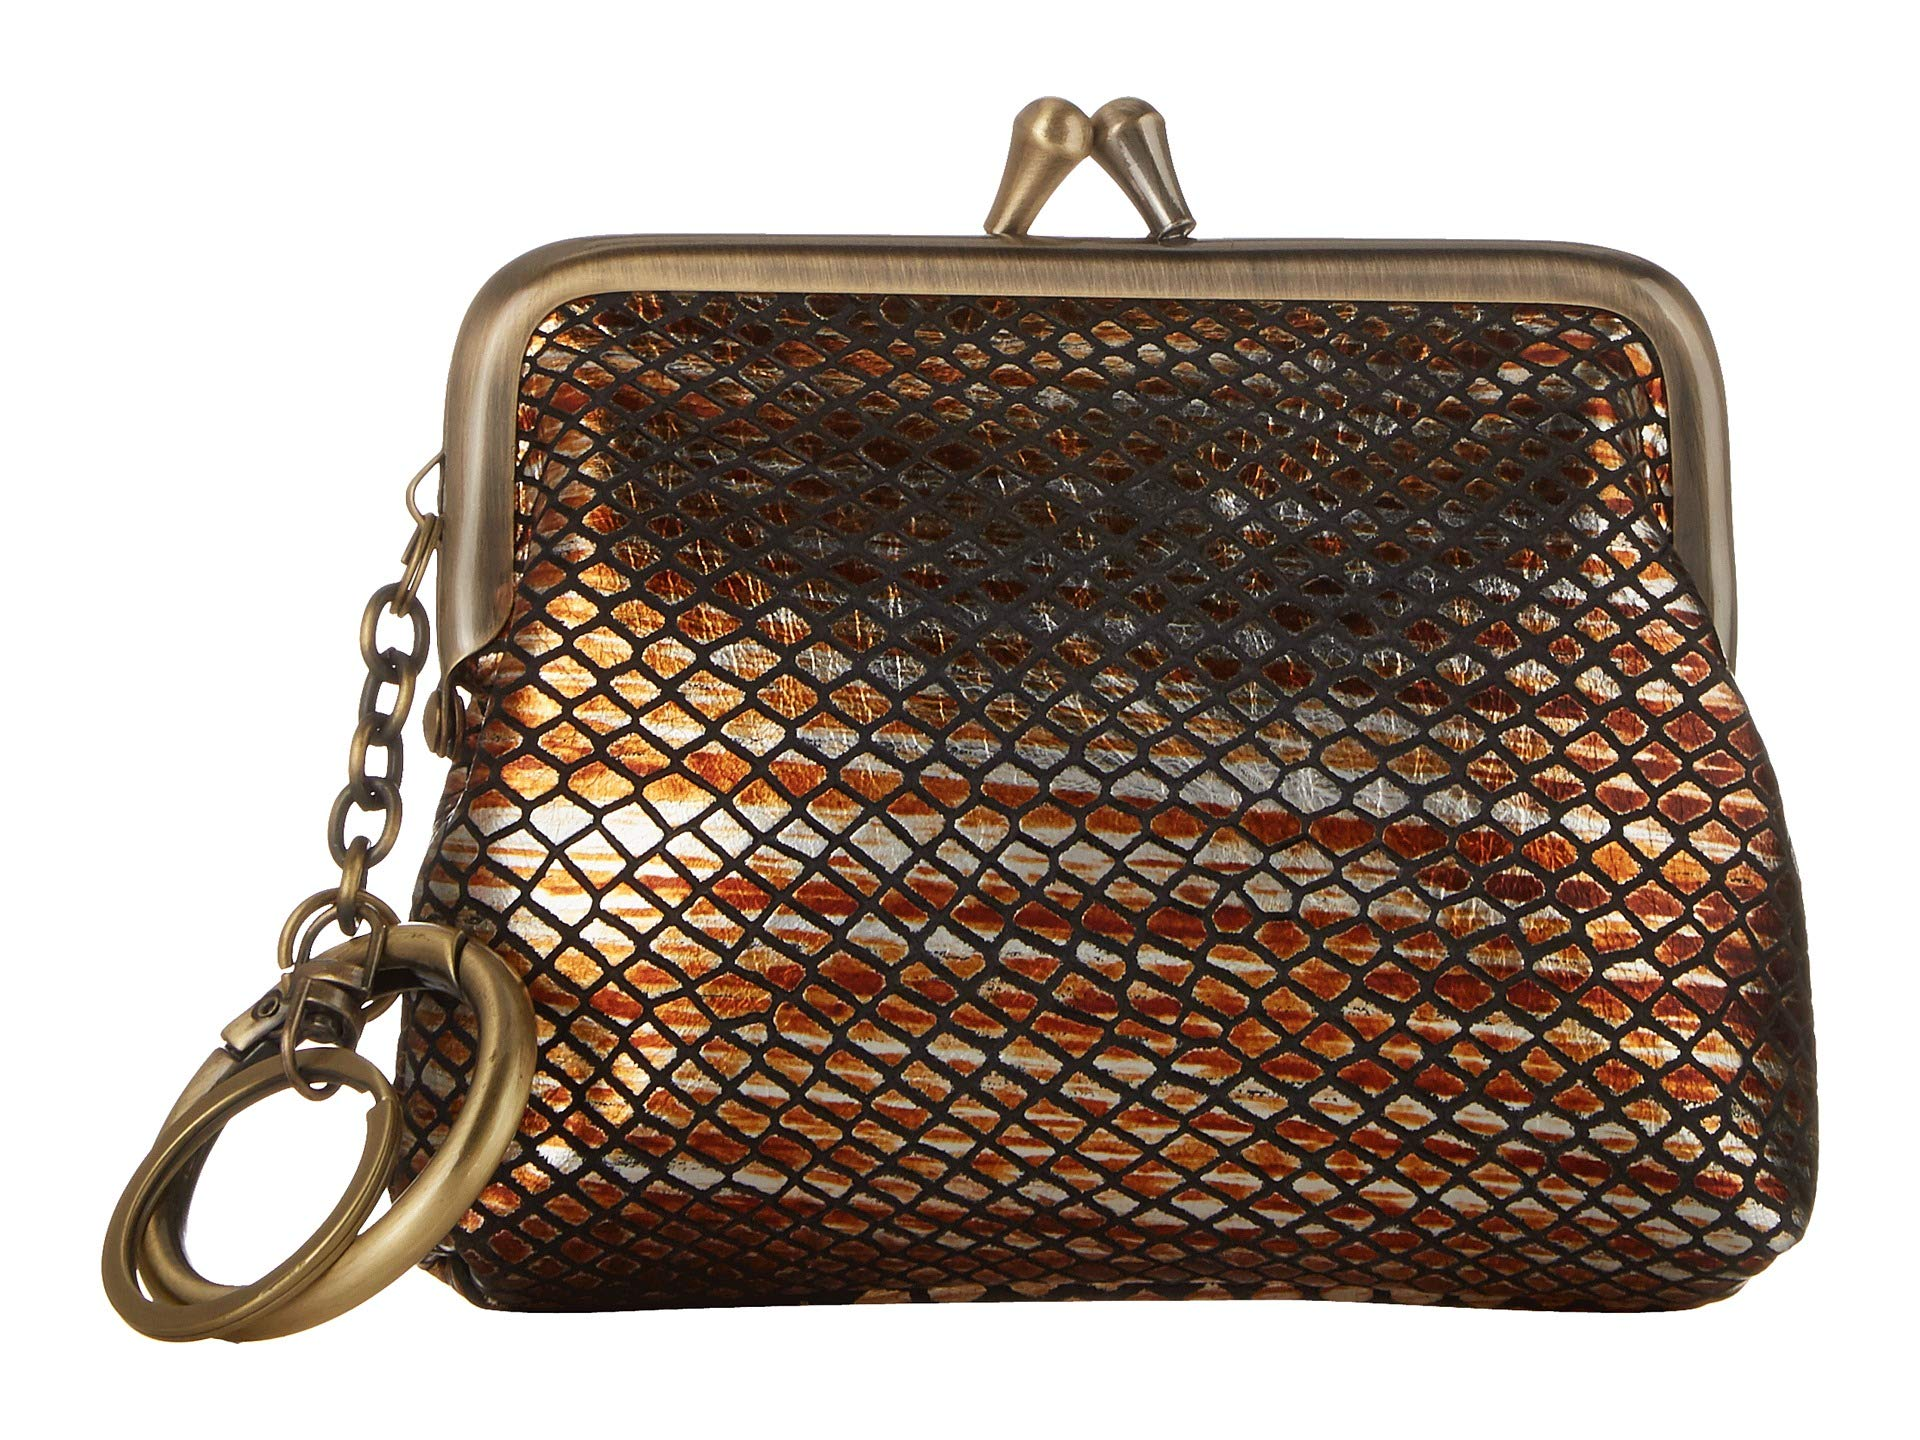 Patricia Nash Women's Large Borse Coin Purse Gold 1 One Size by Patricia Nash (Image #1)